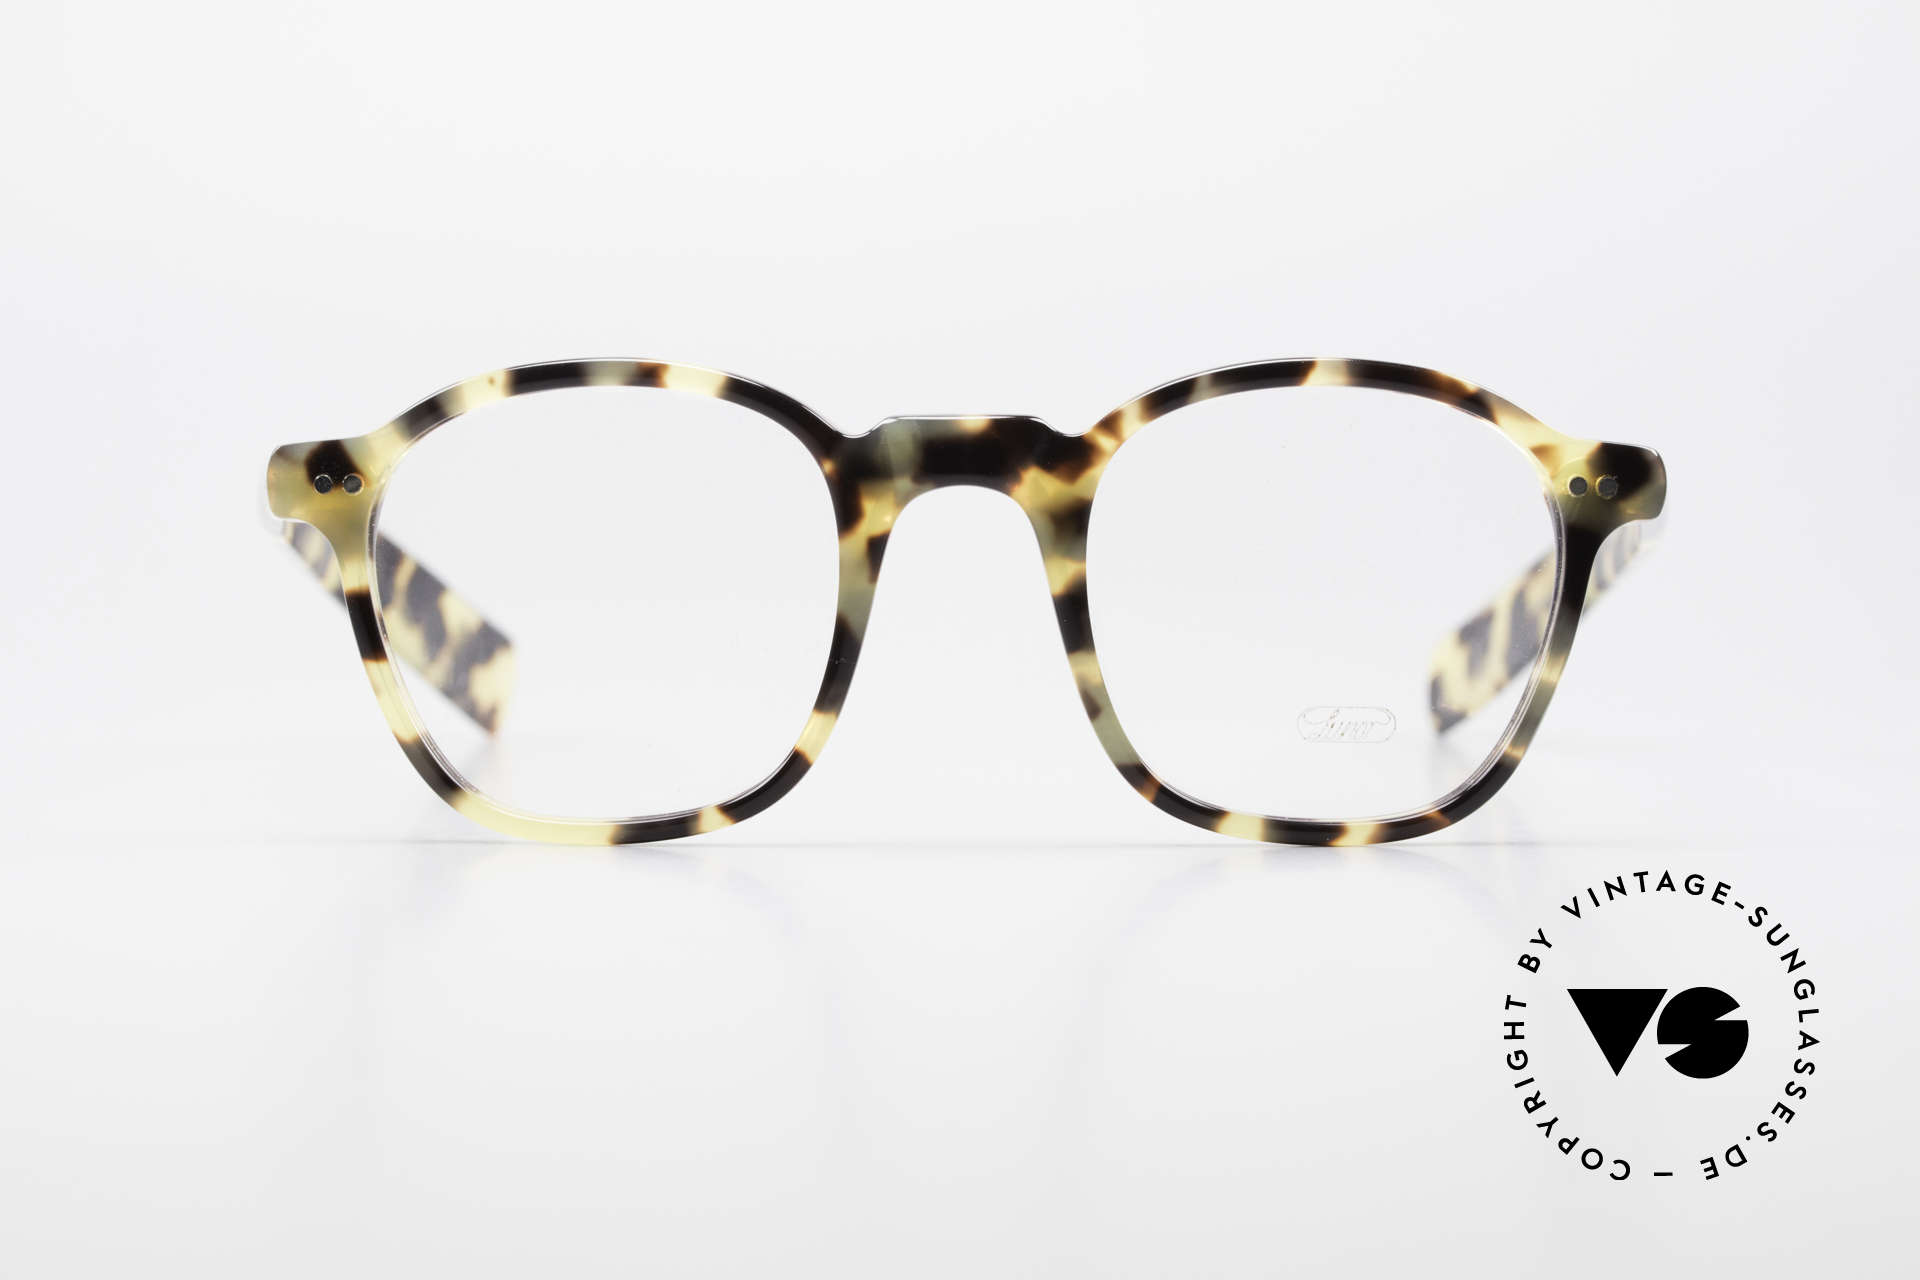 Lunor A51 Johnny Depp James Dean Specs, similar to the old 'Tart Optical Arnel' frames of the 50/60s, Made for Men